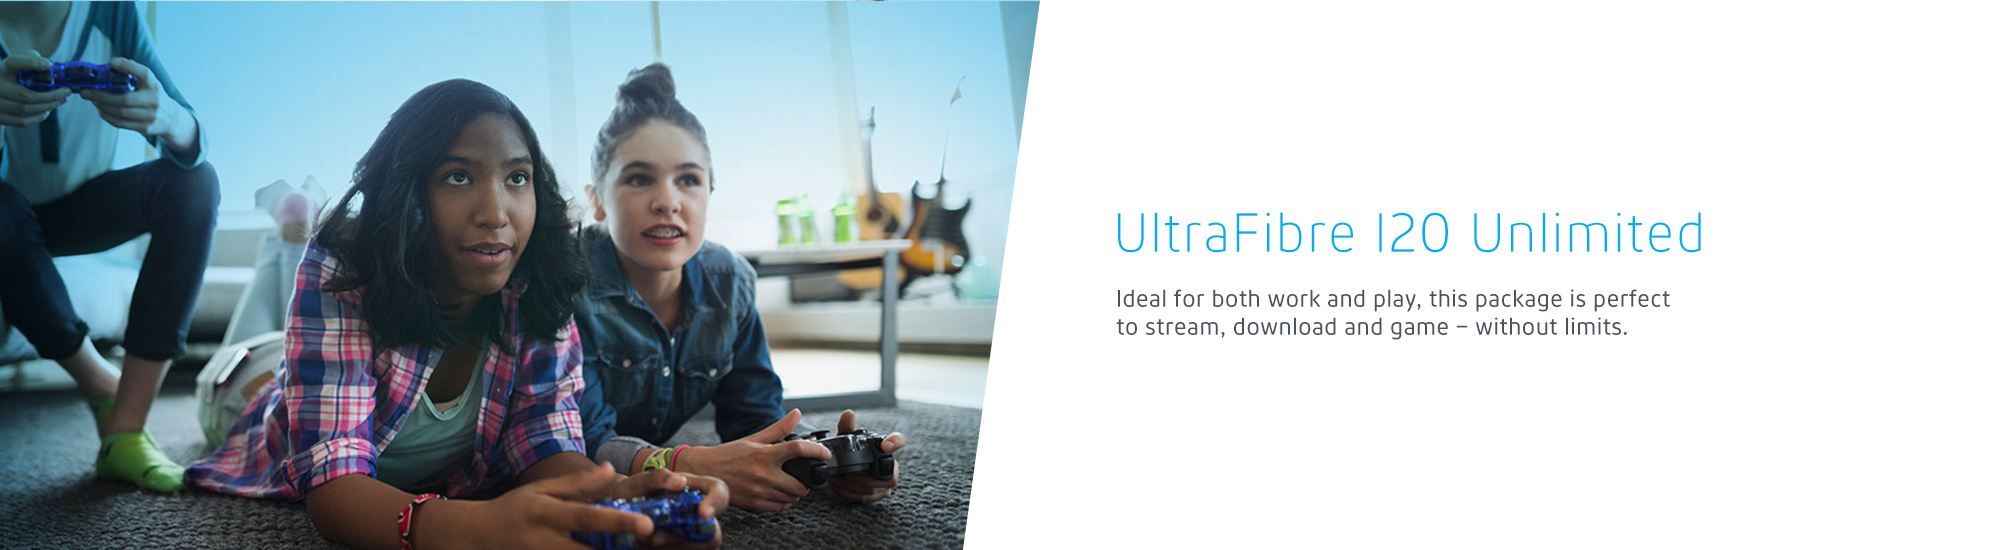 UltraFibre 120 Unlimited Ideal for both work and play, this package is perfect to stream, download and game – without limits.